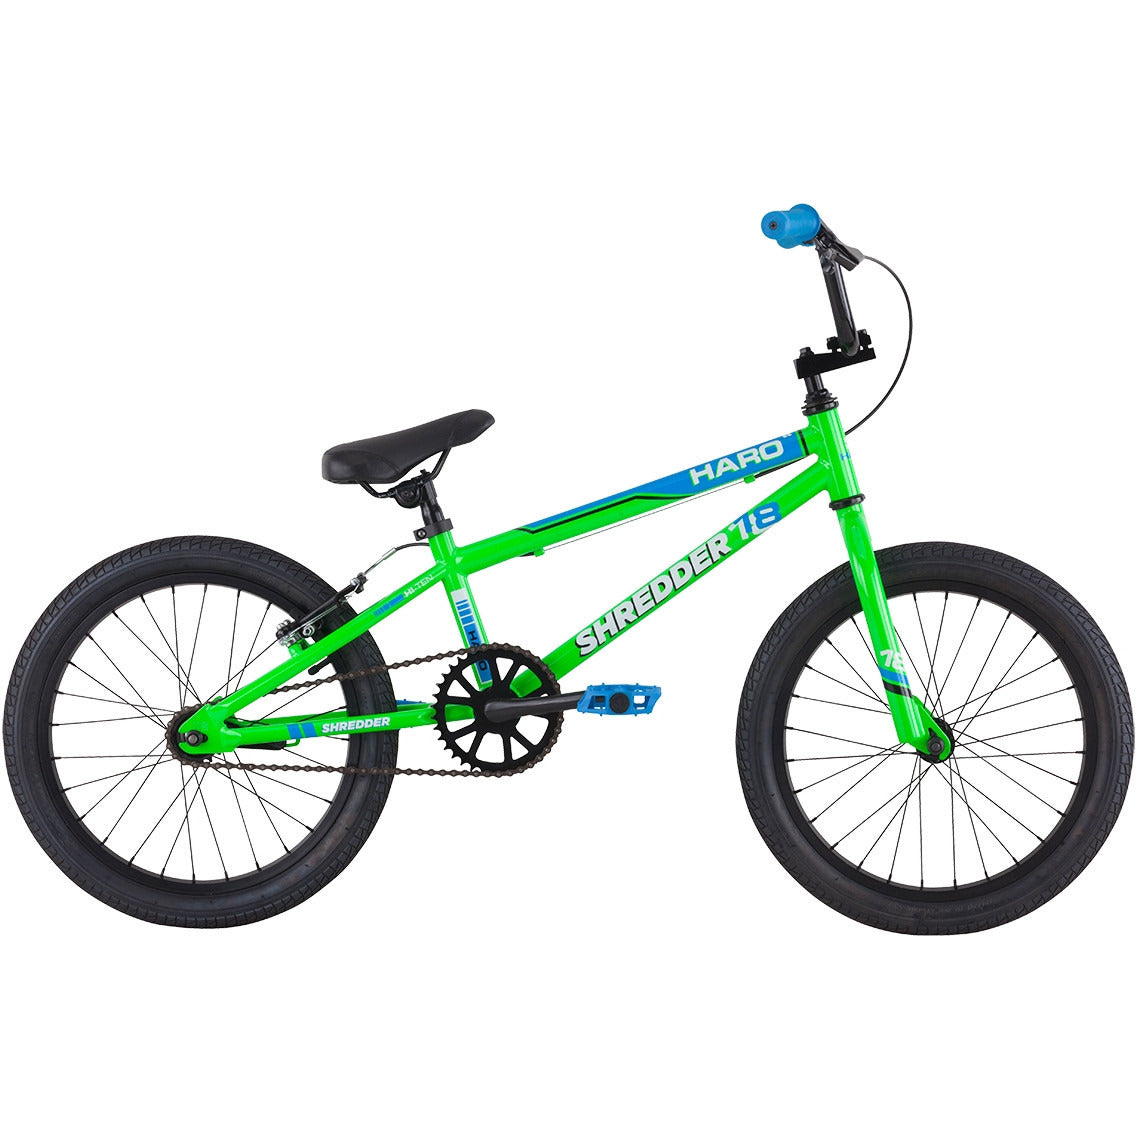 "Haro Shredder 18"" Boys"